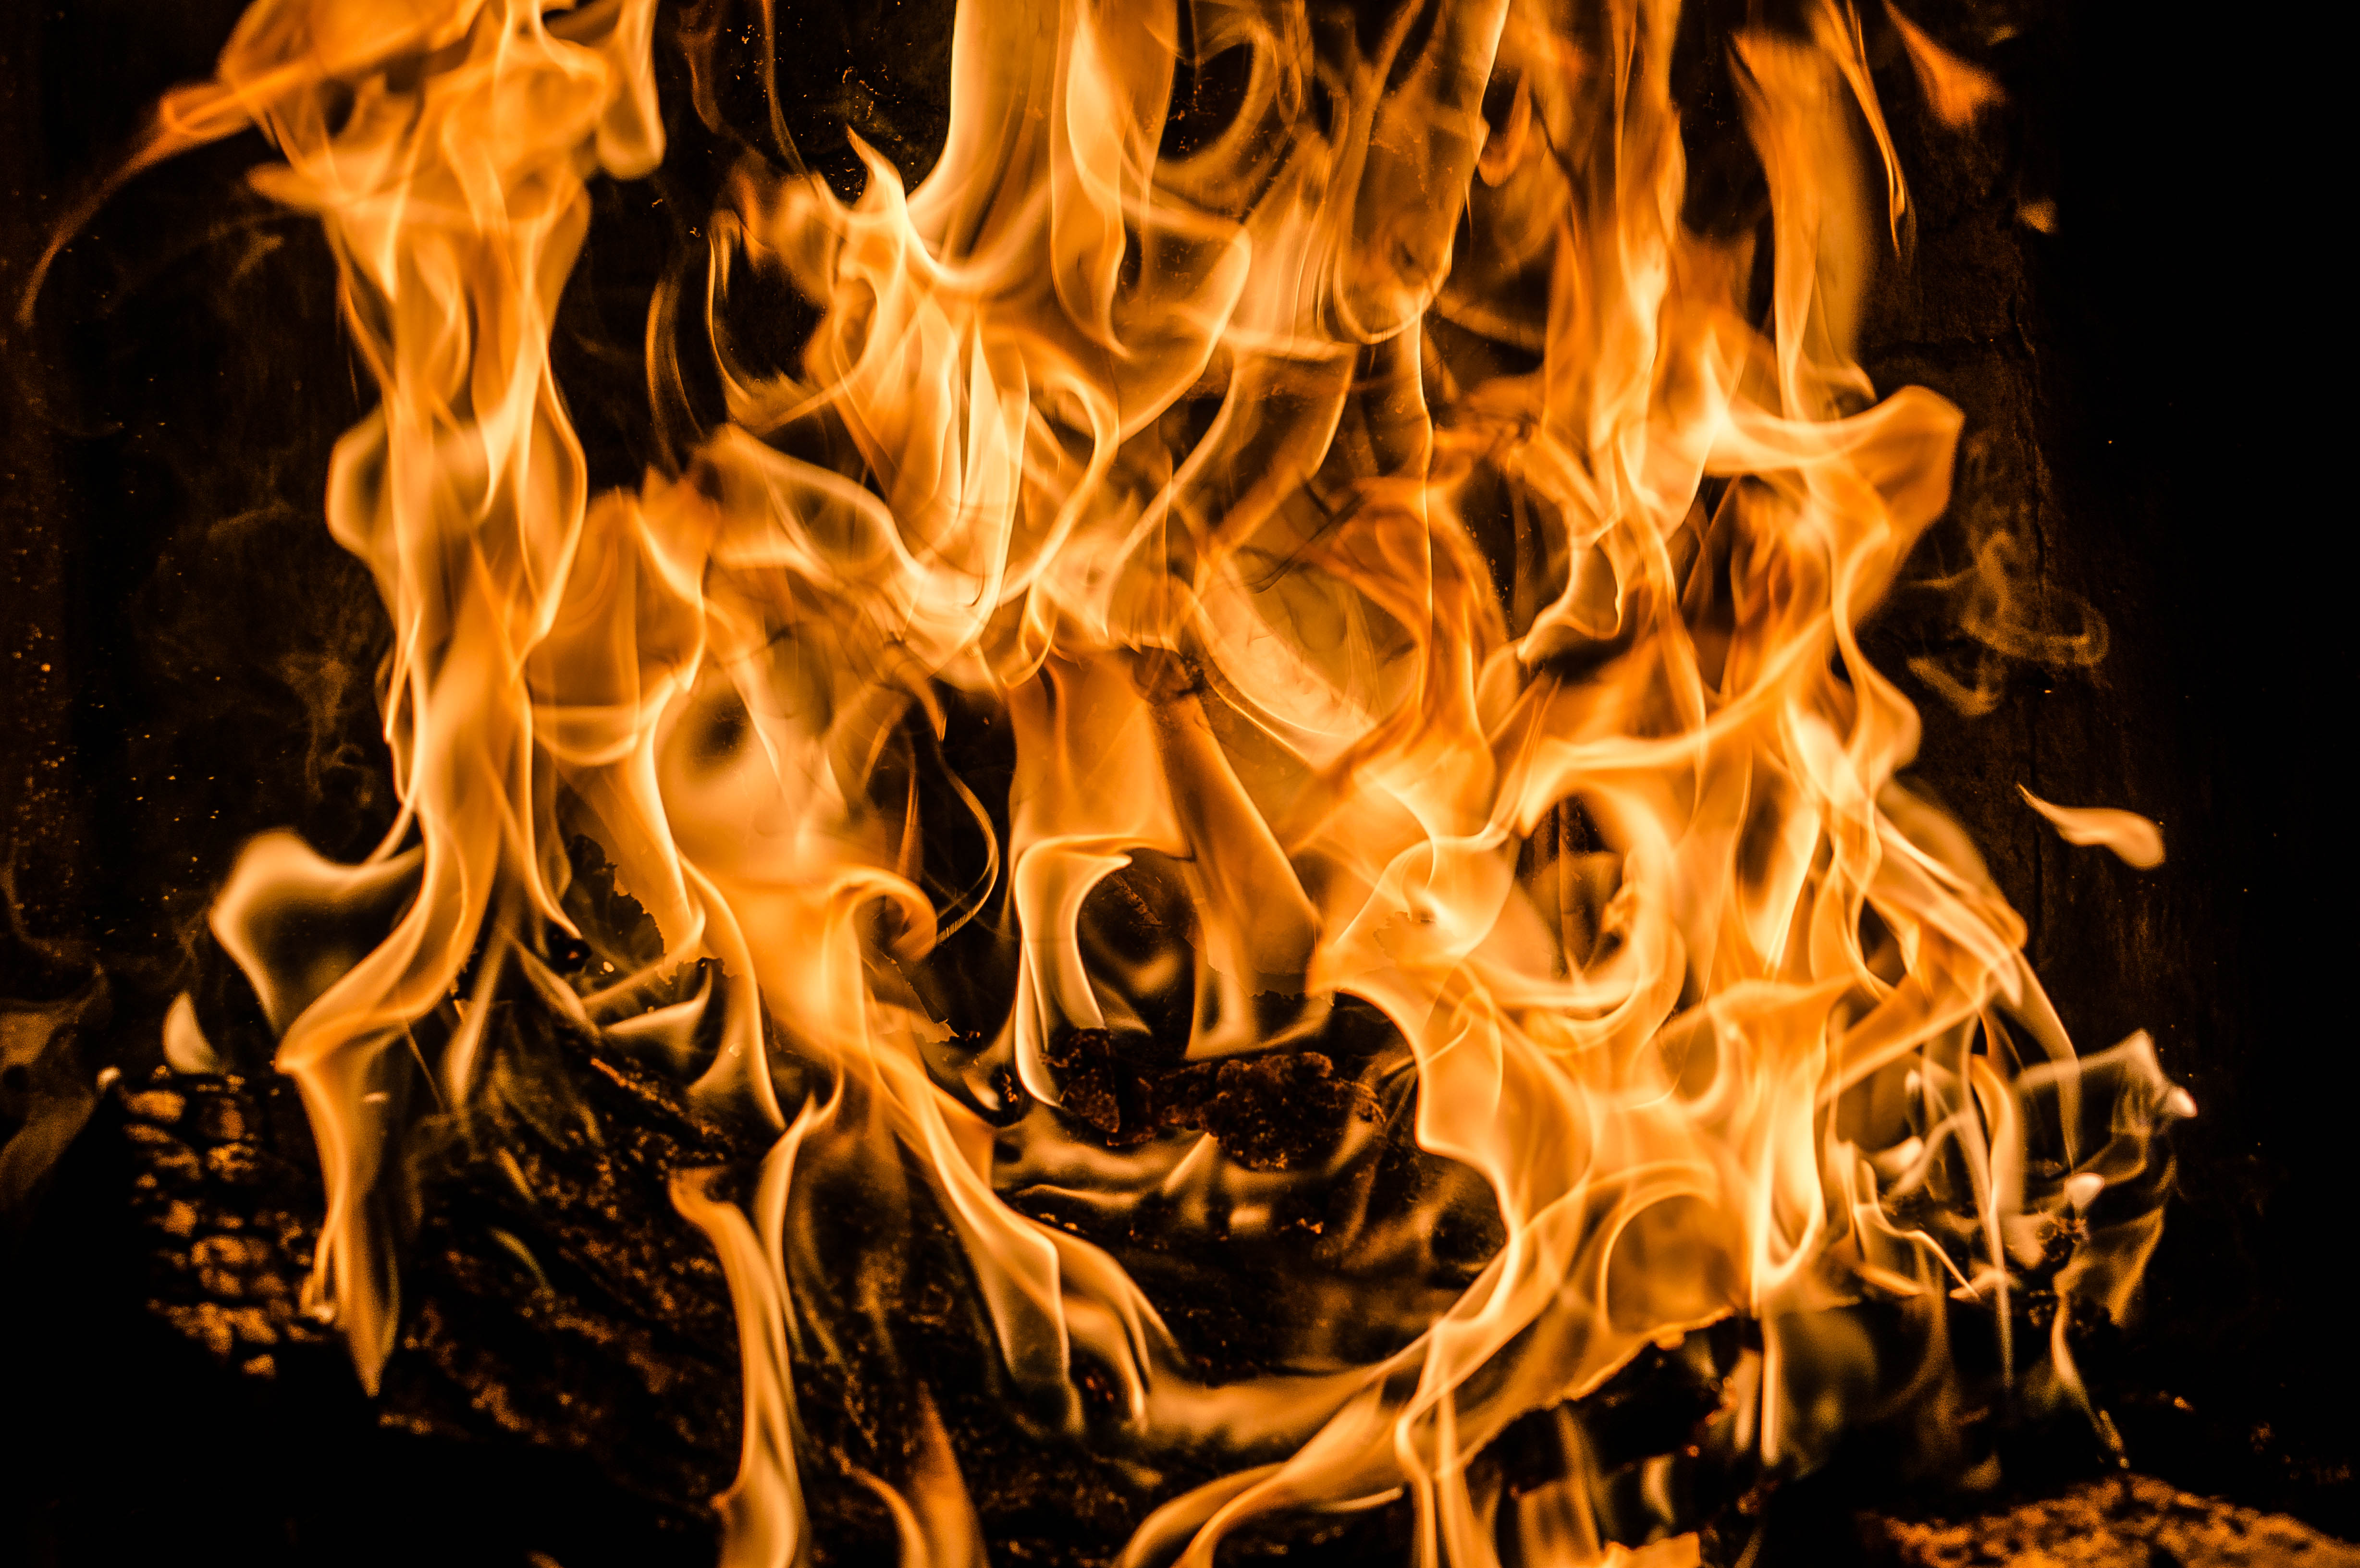 131417 Screensavers and Wallpapers Bonfire for phone. Download Fire, Bonfire, Flame, Miscellanea, Miscellaneous, Firewood, Combustion pictures for free